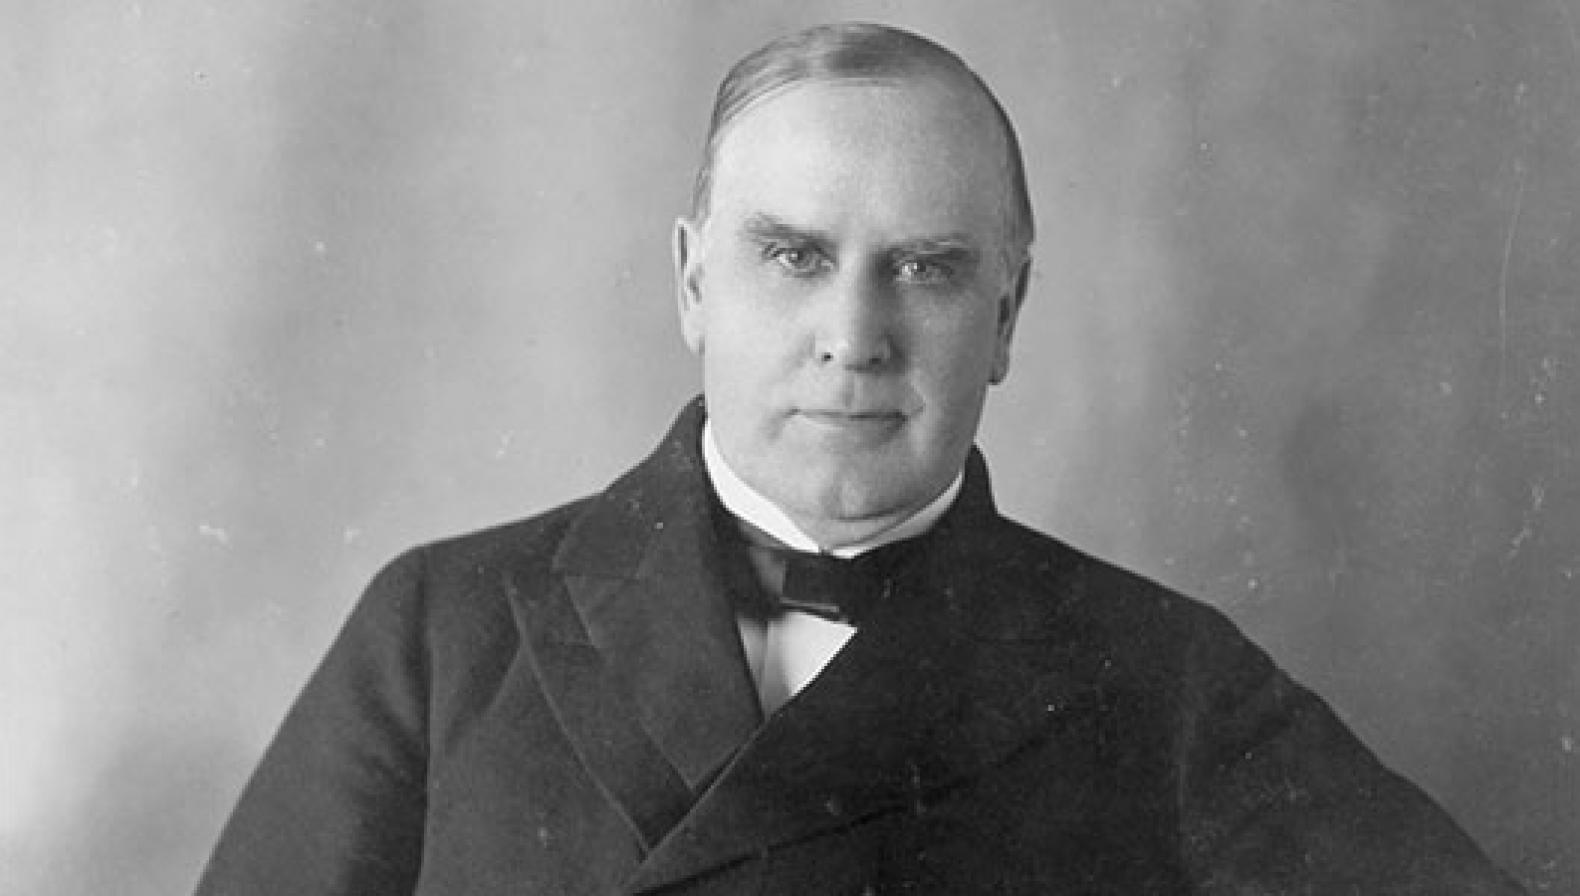 Forgotten Legacy: William McKinley, George Henry White, and the Struggle for Black Equality